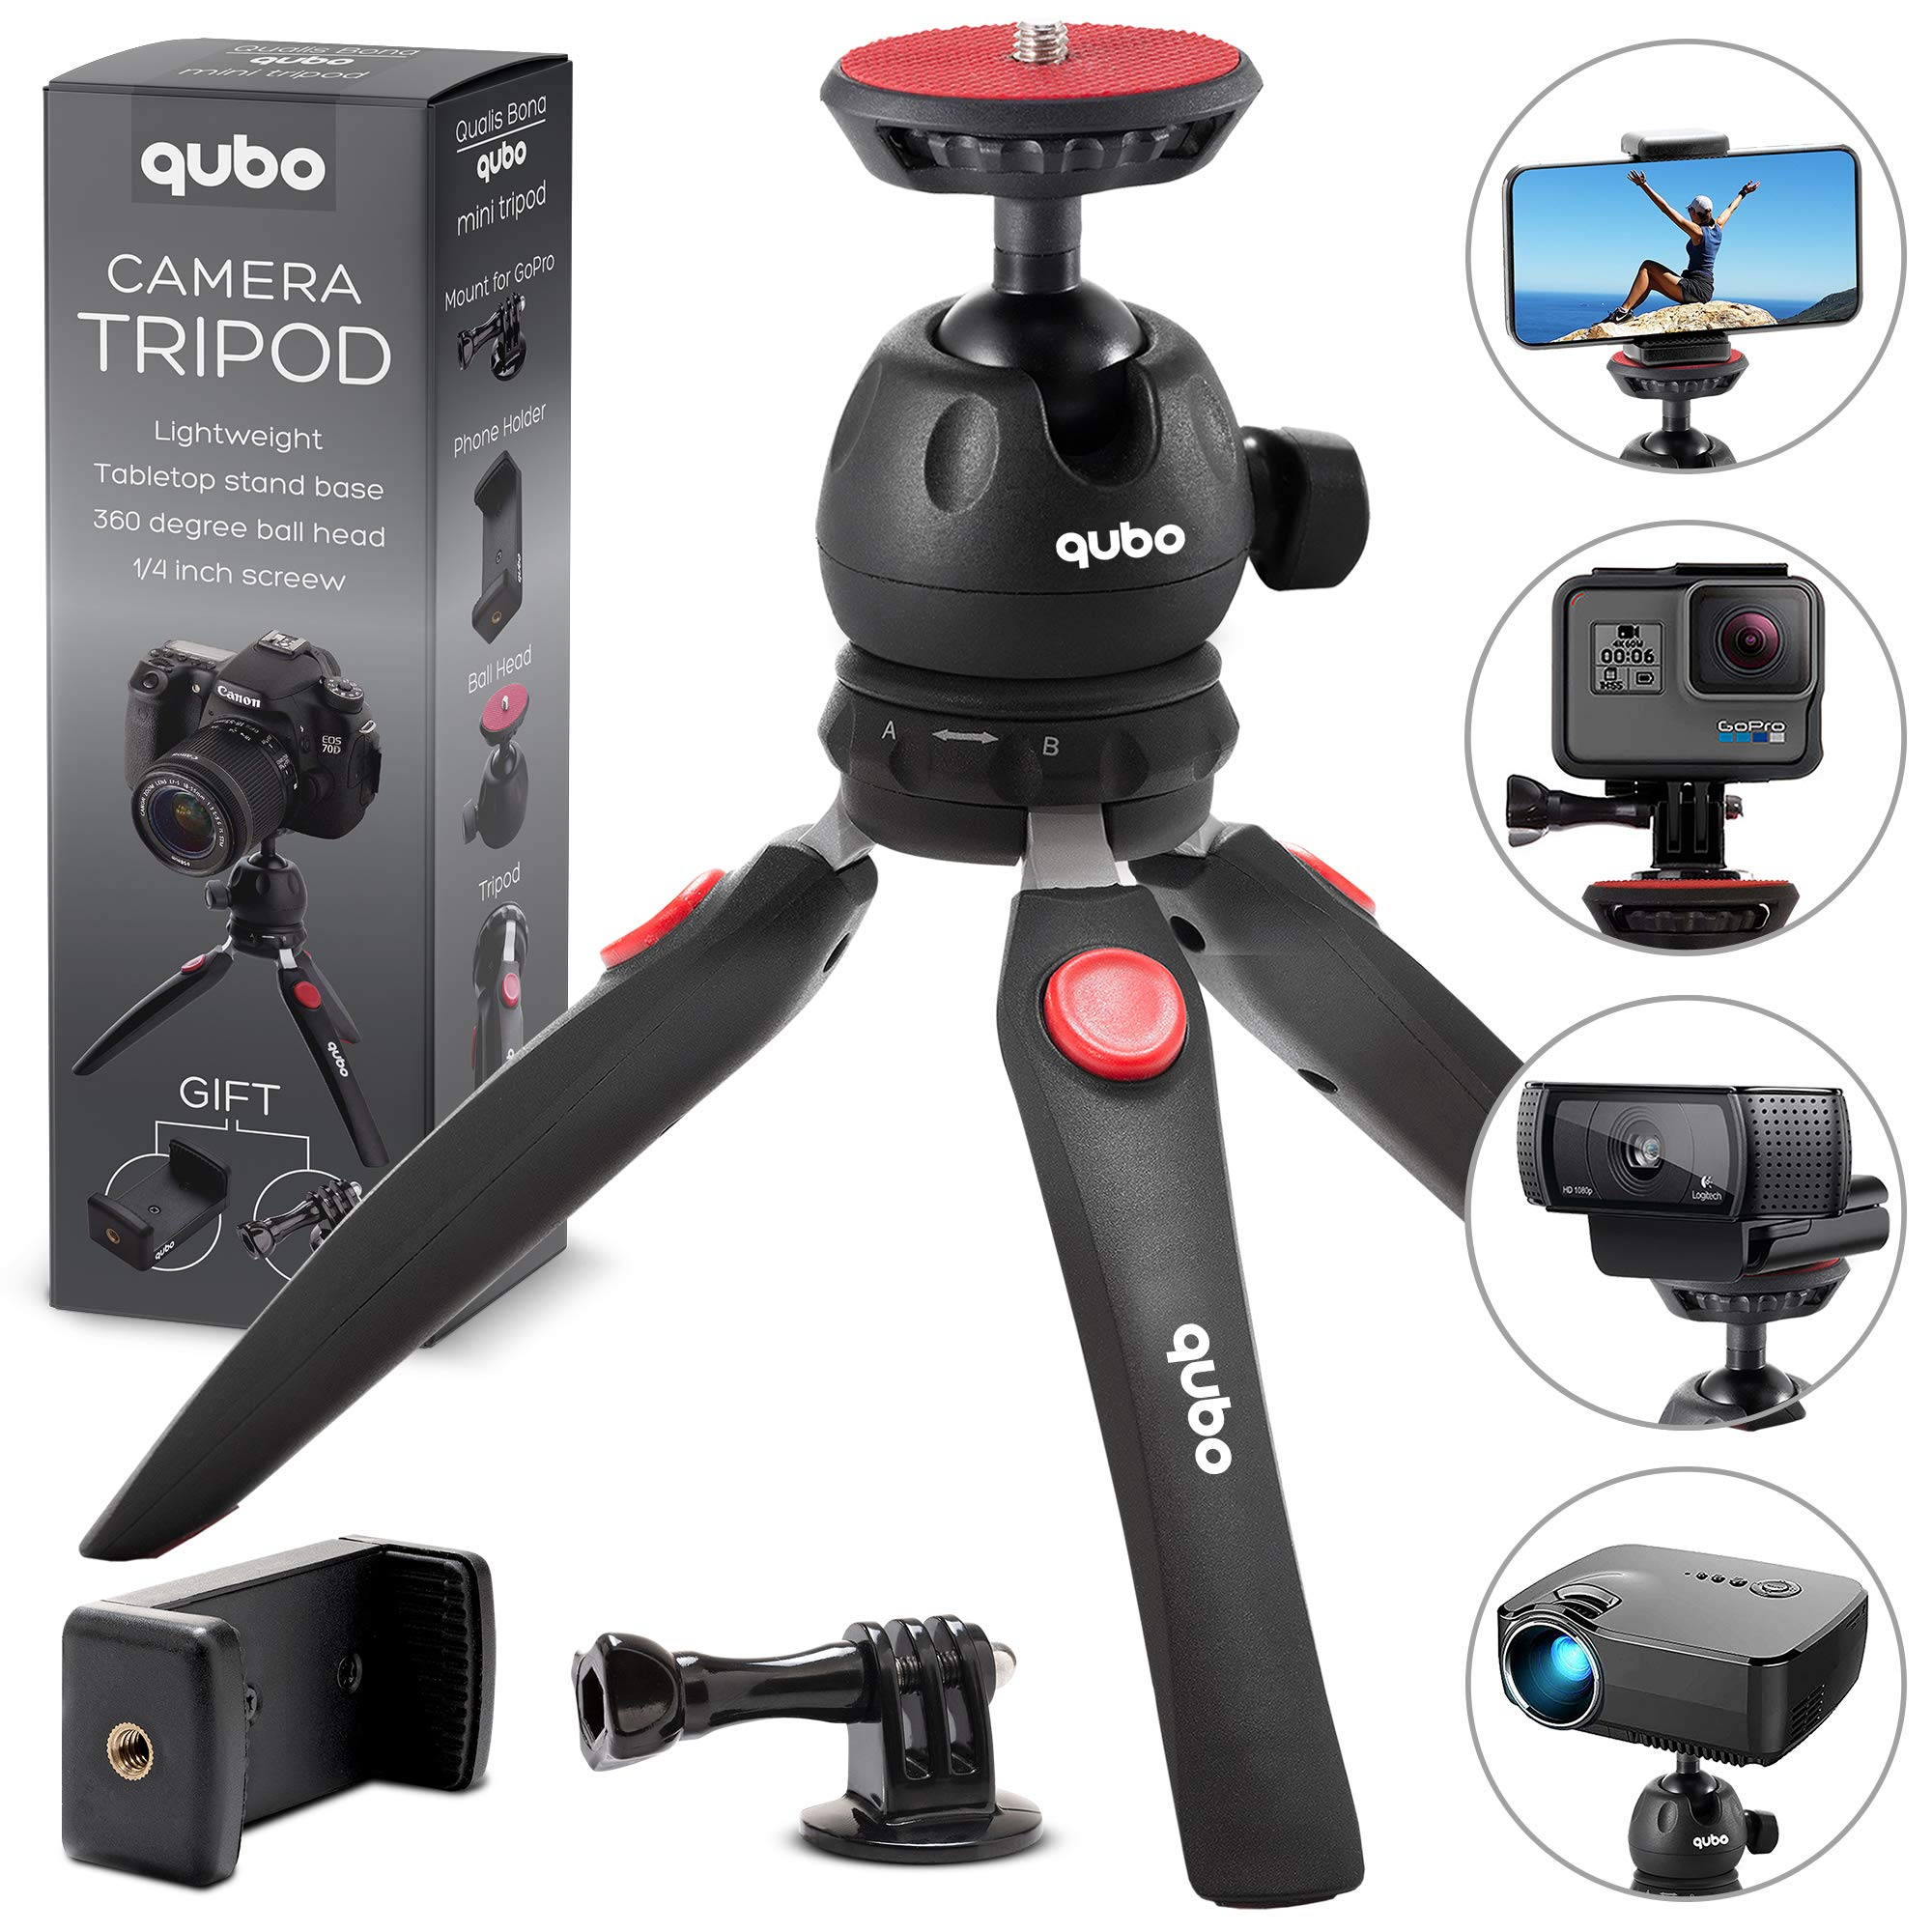 qubo Phone Tripod Camera Stand - Premium Mini Tripod Tabletop - Small Tripod Cell Phone Holder - Hand Tripod Compatible with iPhone Smartphones GoPro Webcam Video Projector Compact DSLRs by qu bo